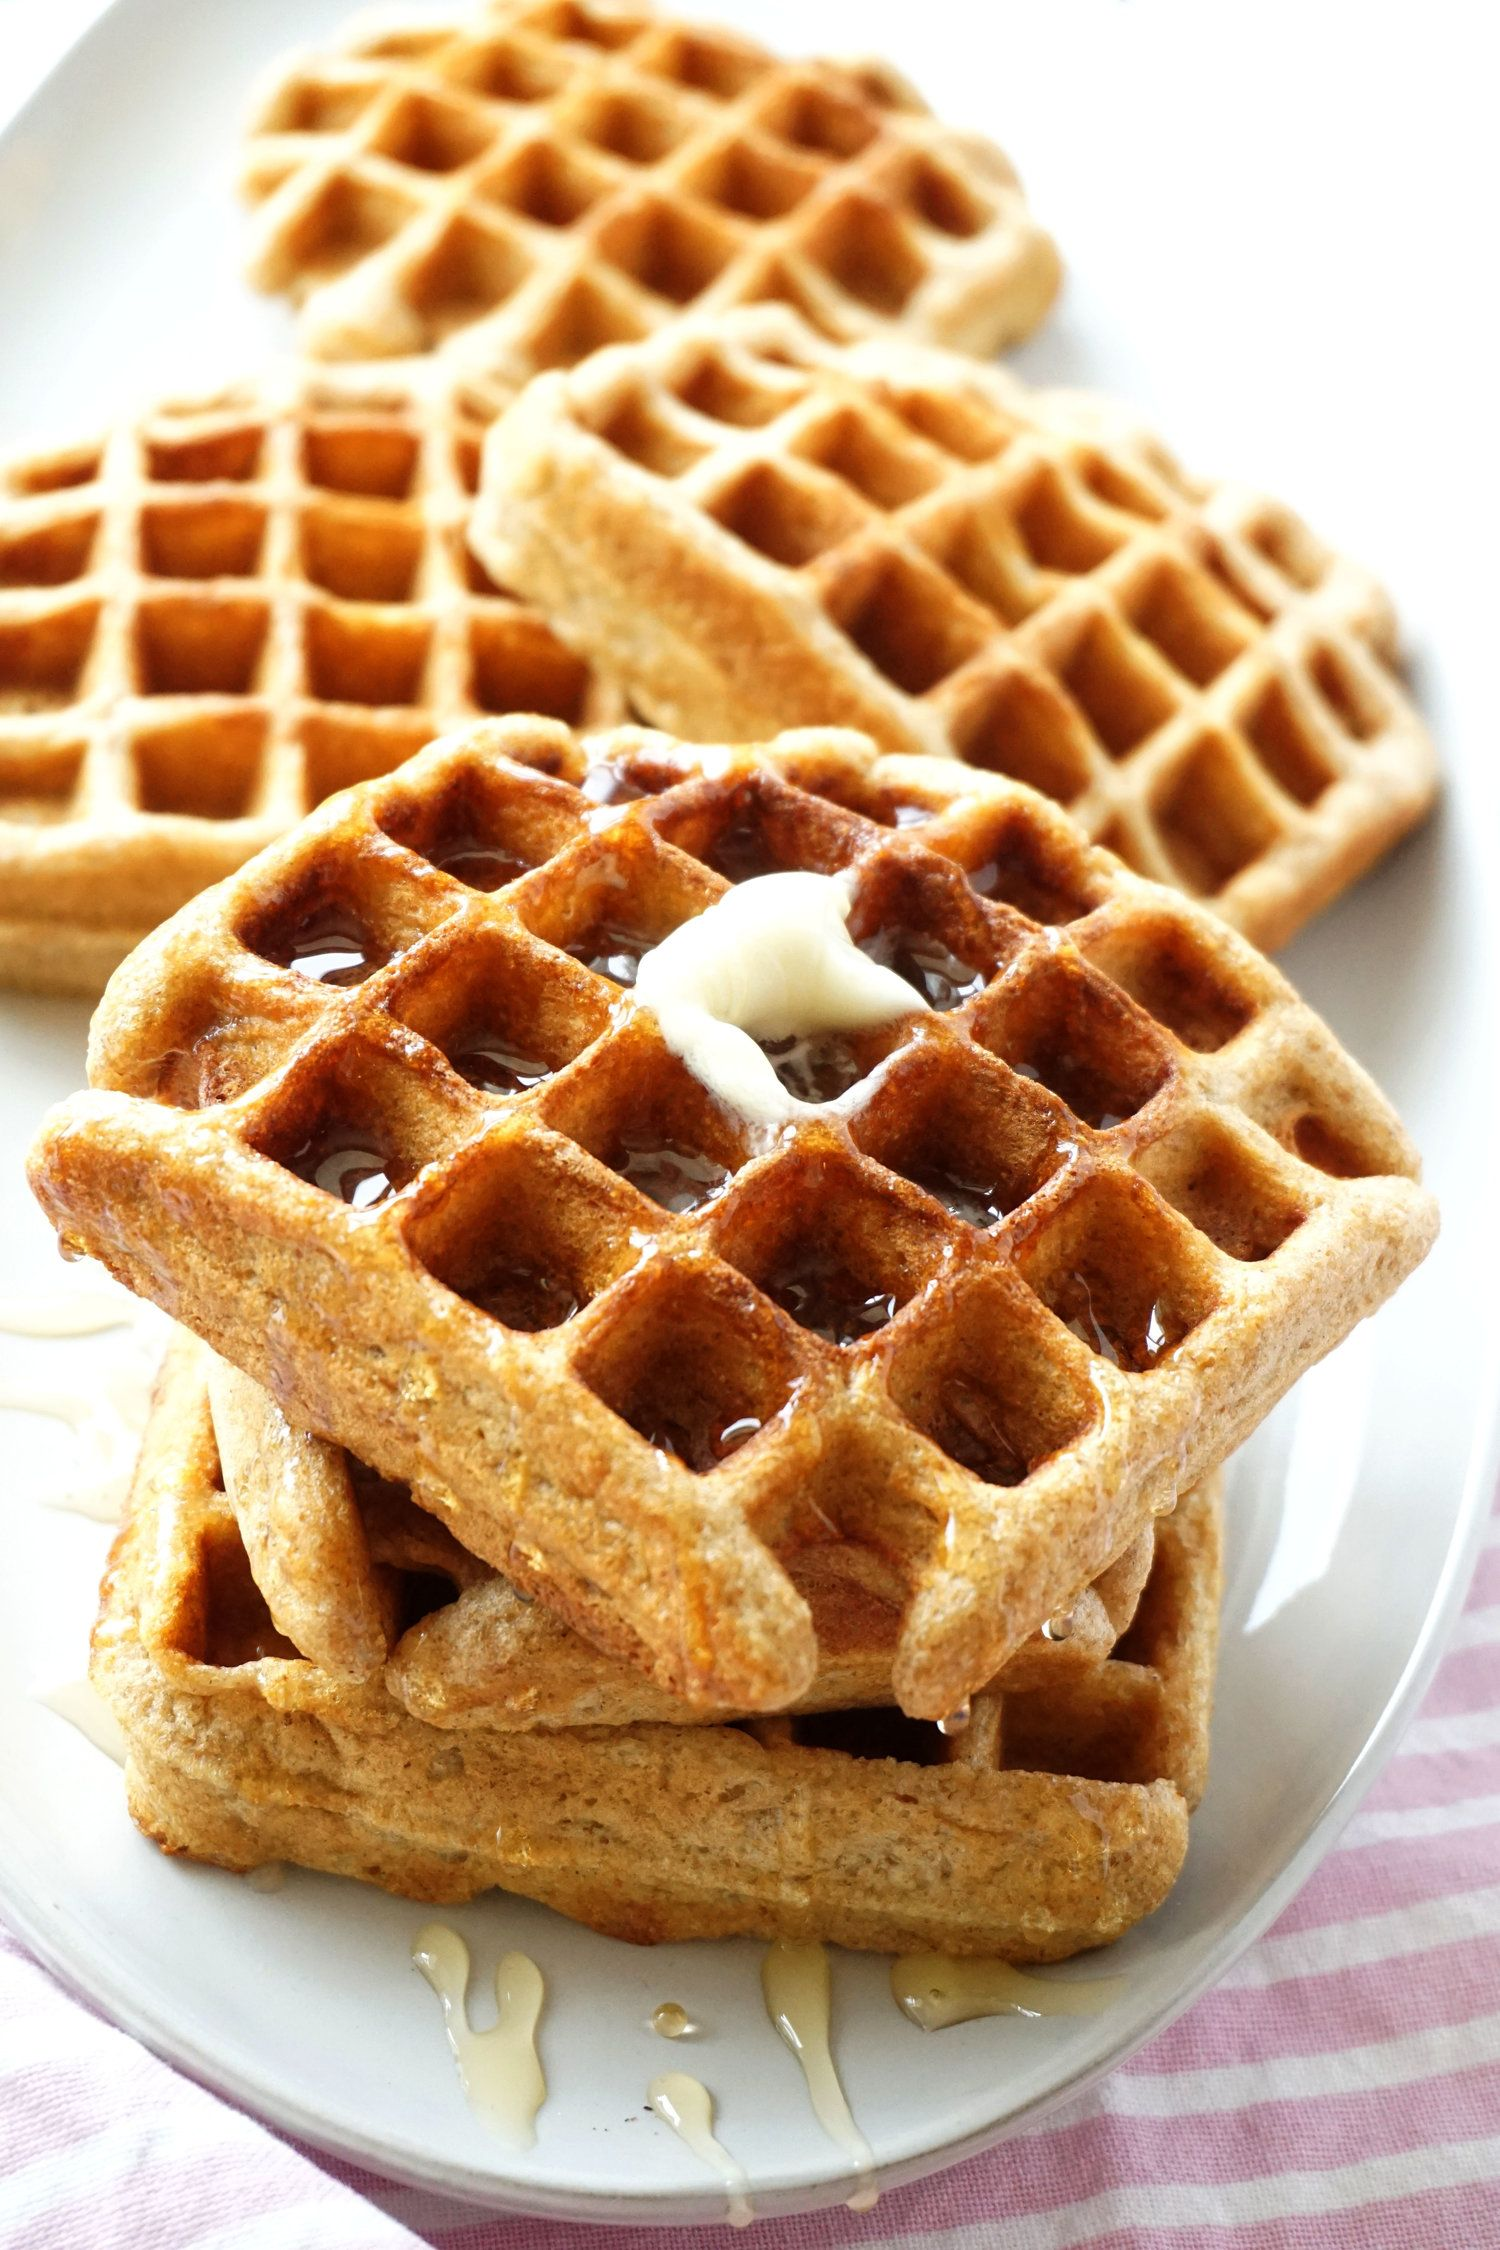 Classic Whole Wheat Buttermilk Waffles Hungry Haley Buttermilk Waffles Buttermilk Waffles Recipe Waffle Recipes